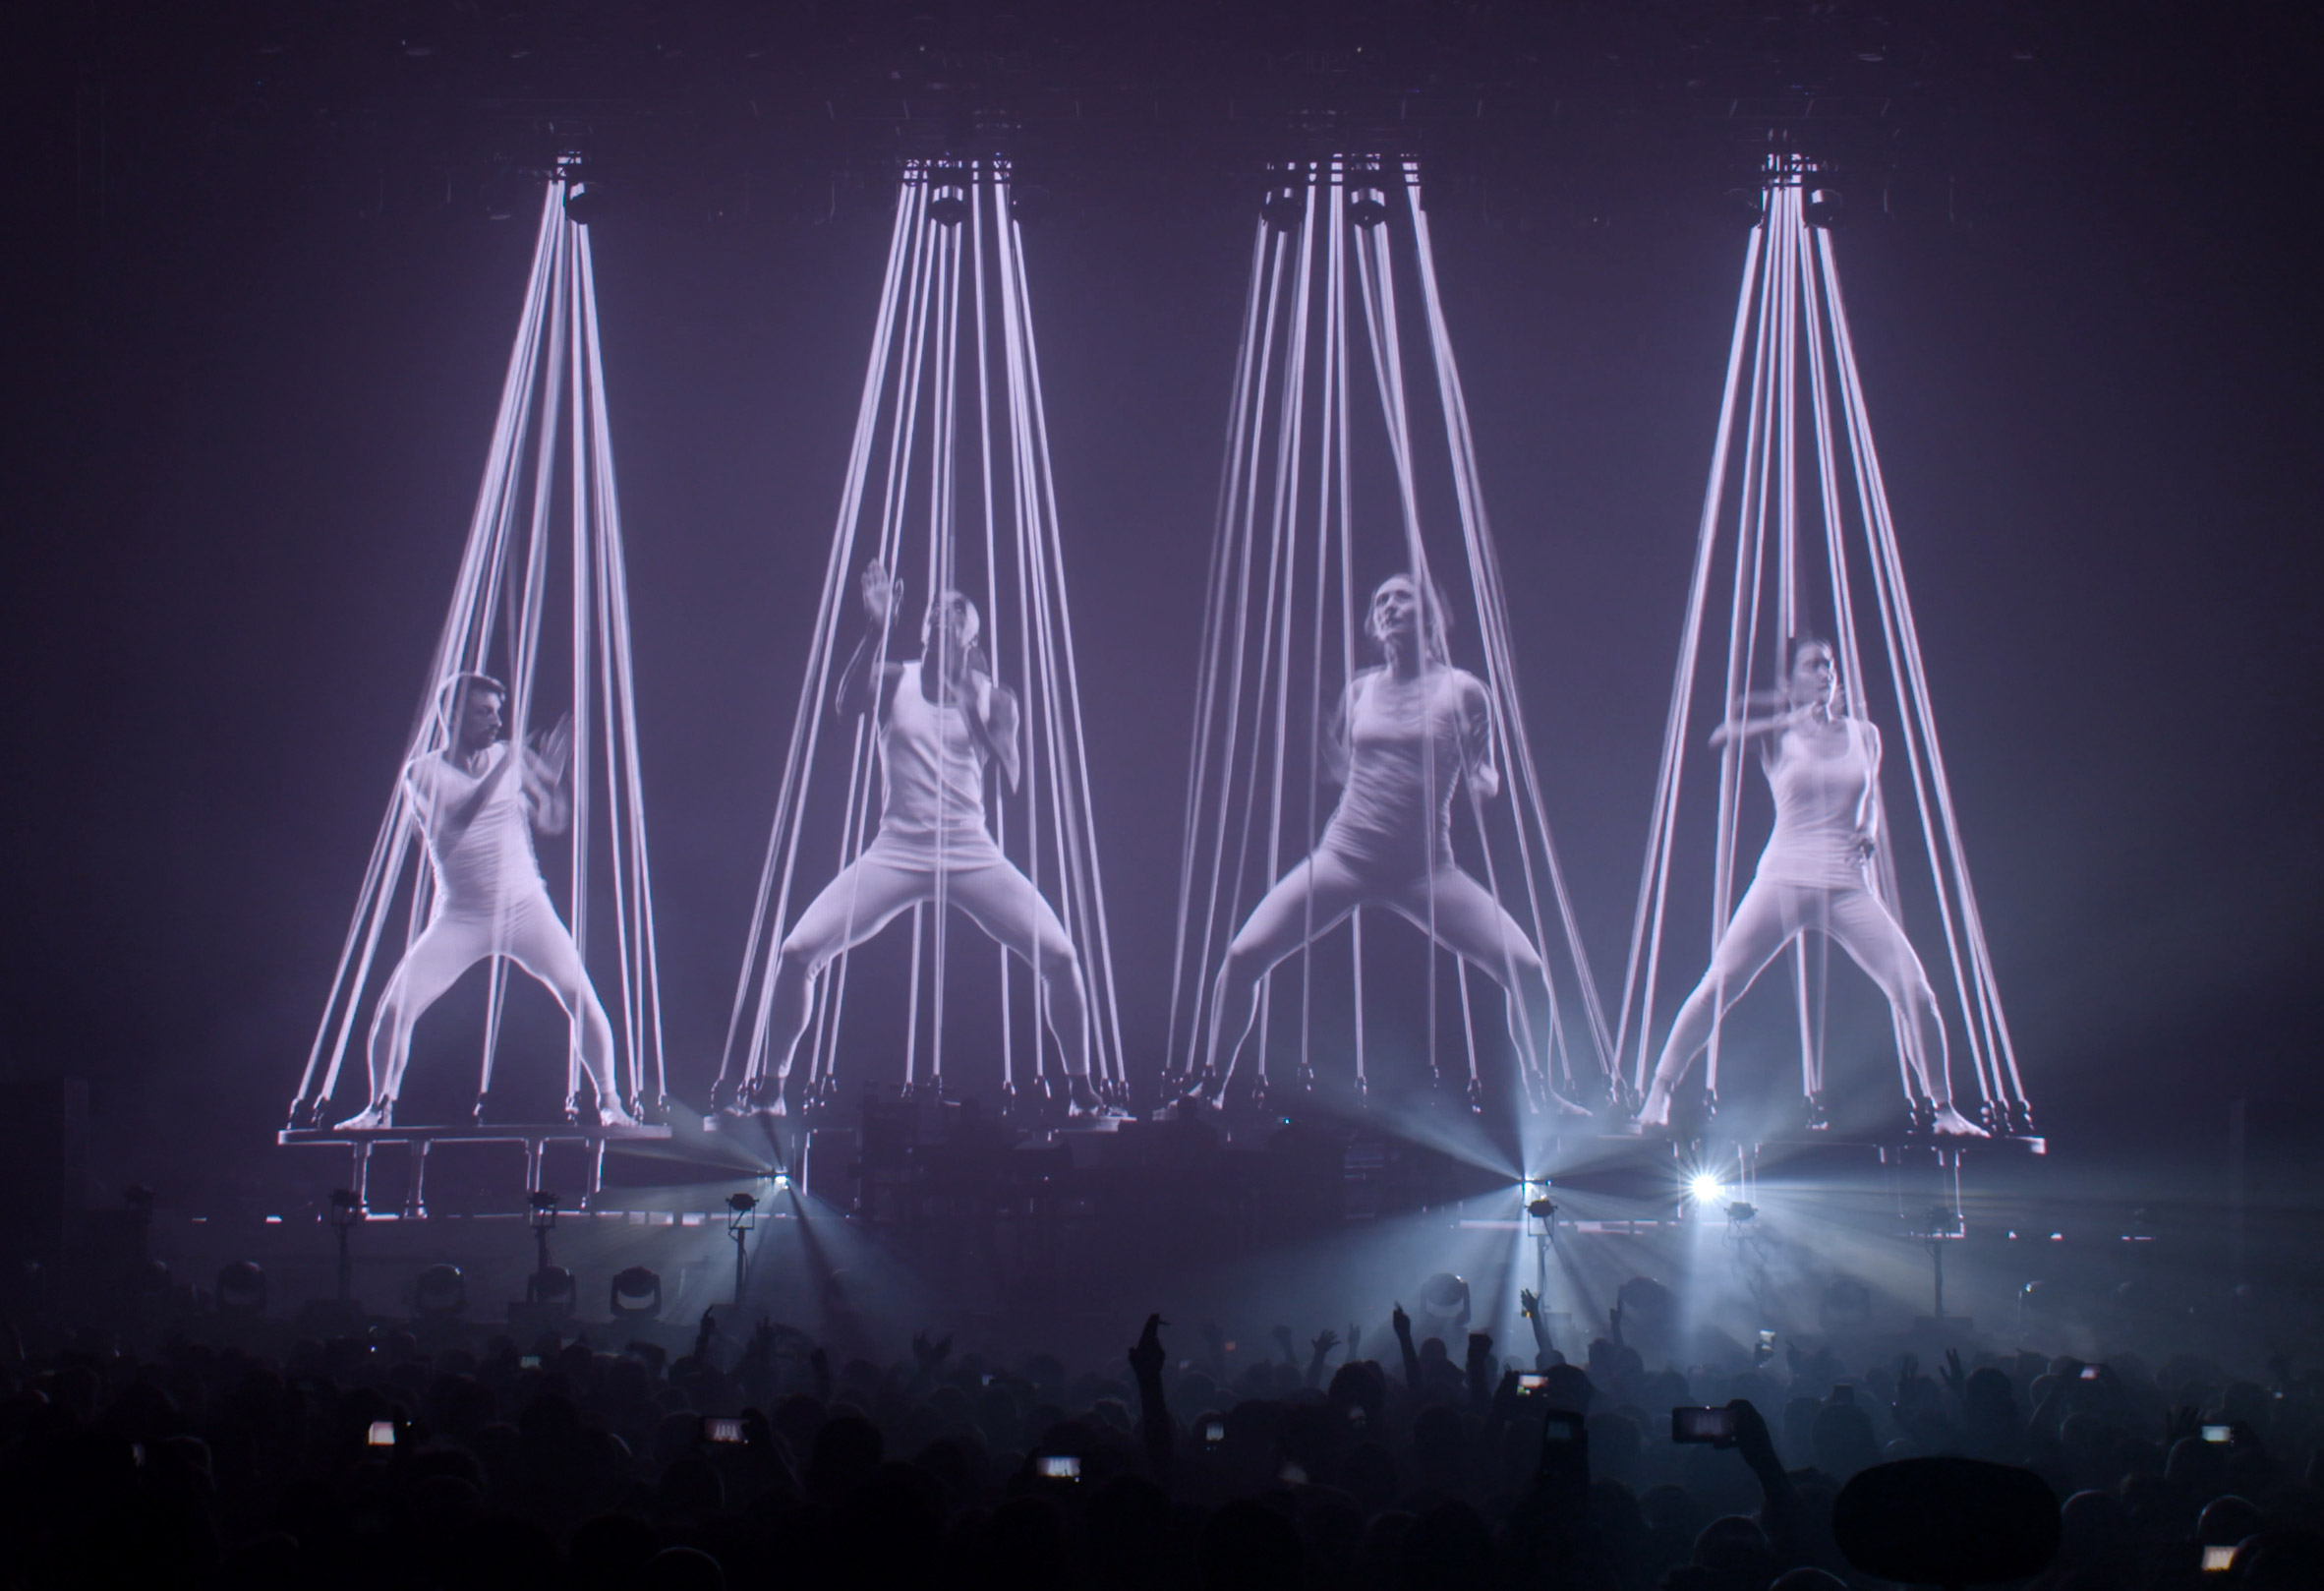 Marcus Lyall and Adam Smith have designed live shows for electronic music duo The Chemical Brothers for over 25 years